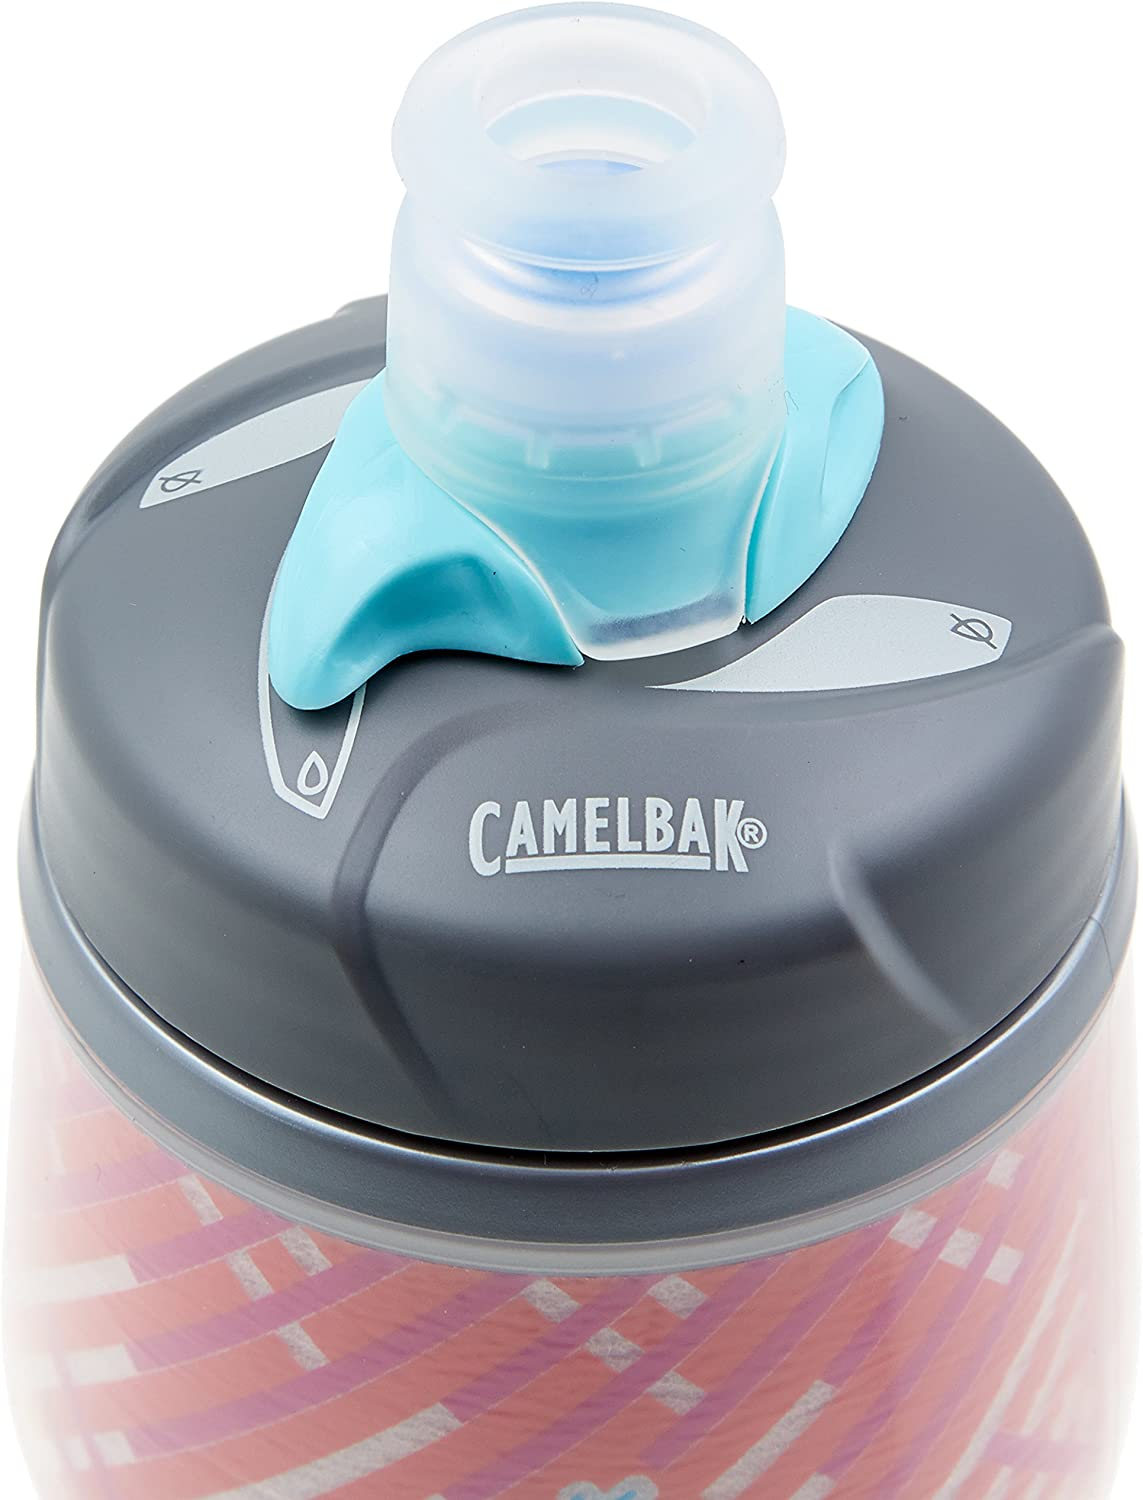 Camelbak Podium Chill 610 ml Insulated Leak Free Bouteille D/'Eau Sport Rouge Gym